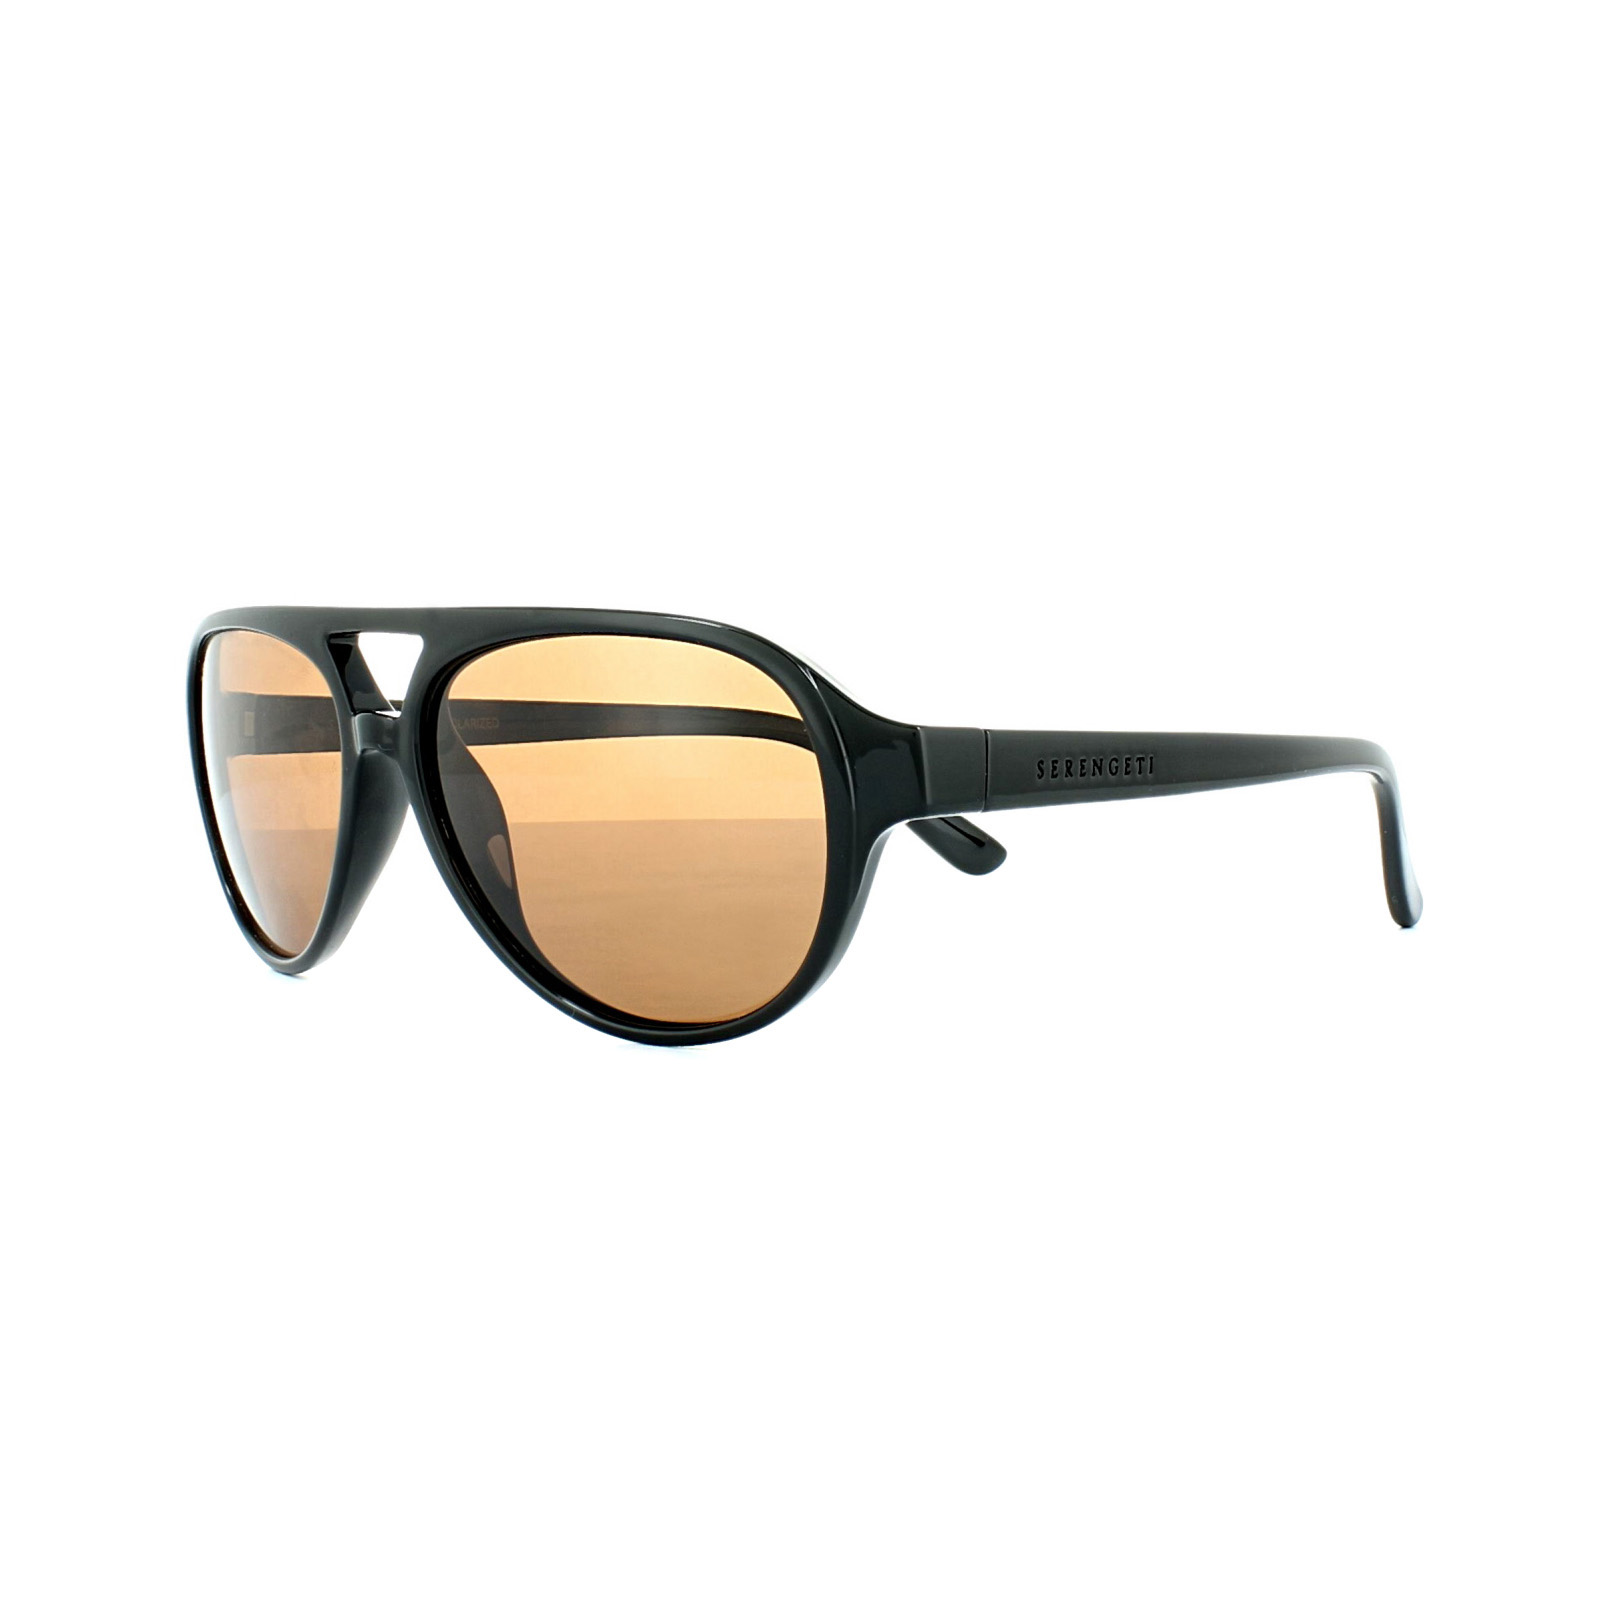 83bfa466c2 Sentinel Serengeti Sunglasses Giorgio 8182 Shiny Black Brown Wood Drivers  Brown Polarized